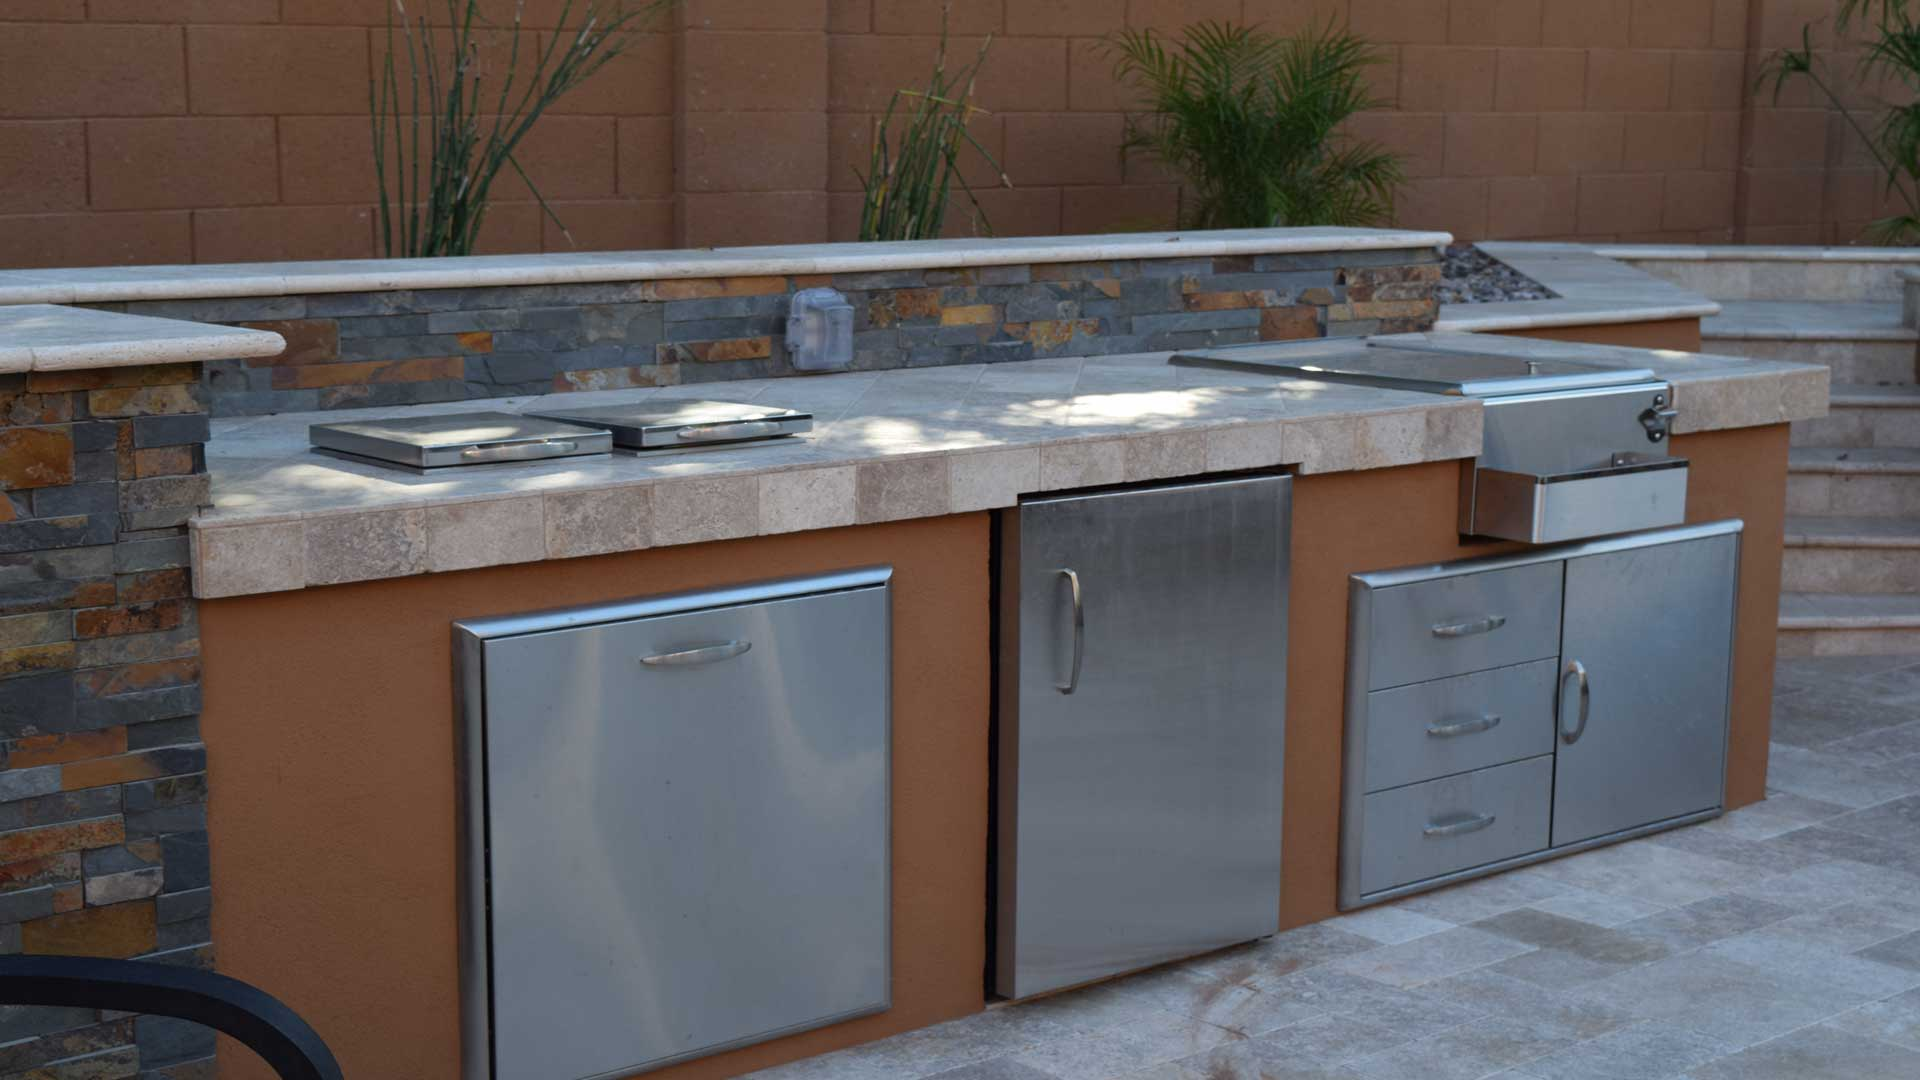 greenstar-eco-outdoor-kitchens-slider-1